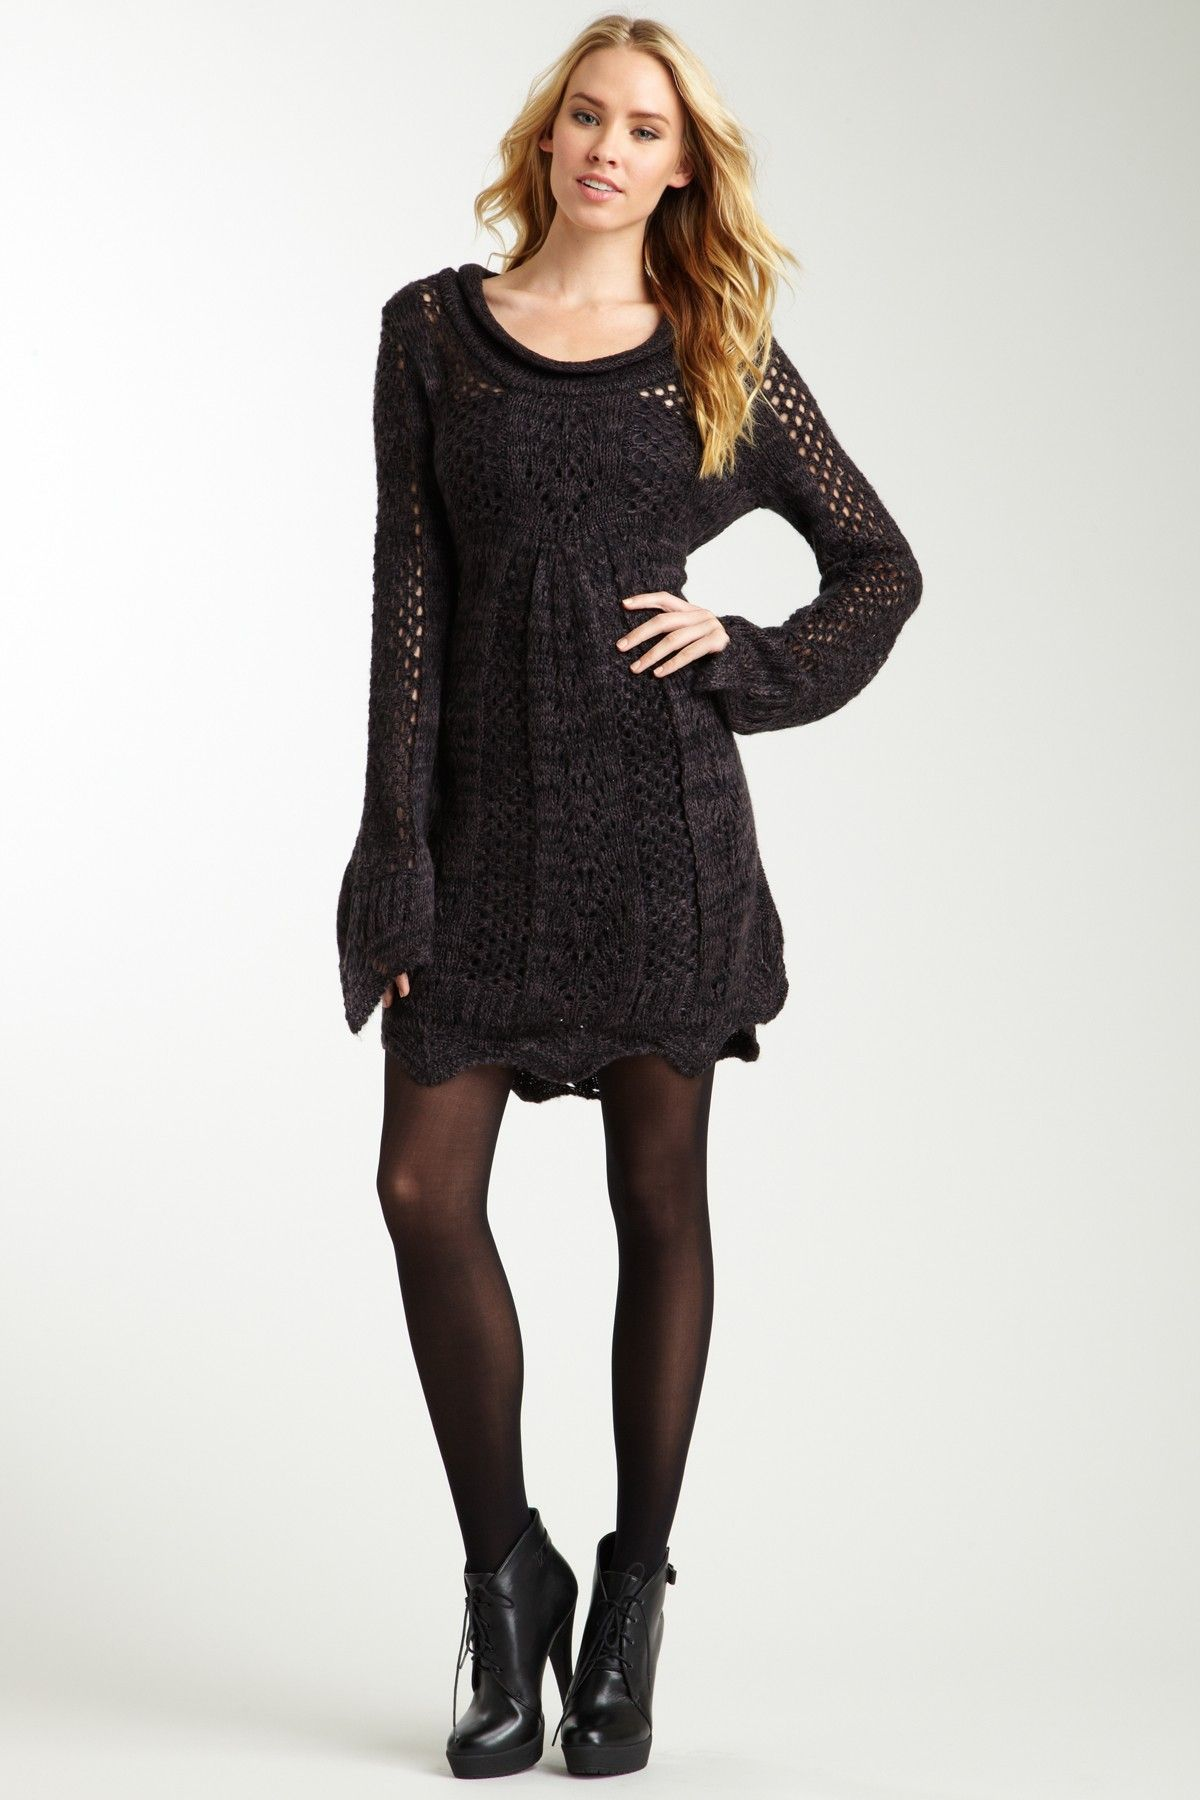 e3959efc42b Crochet Knit Sweater Dress ~ I would make this longer in the length but love  the